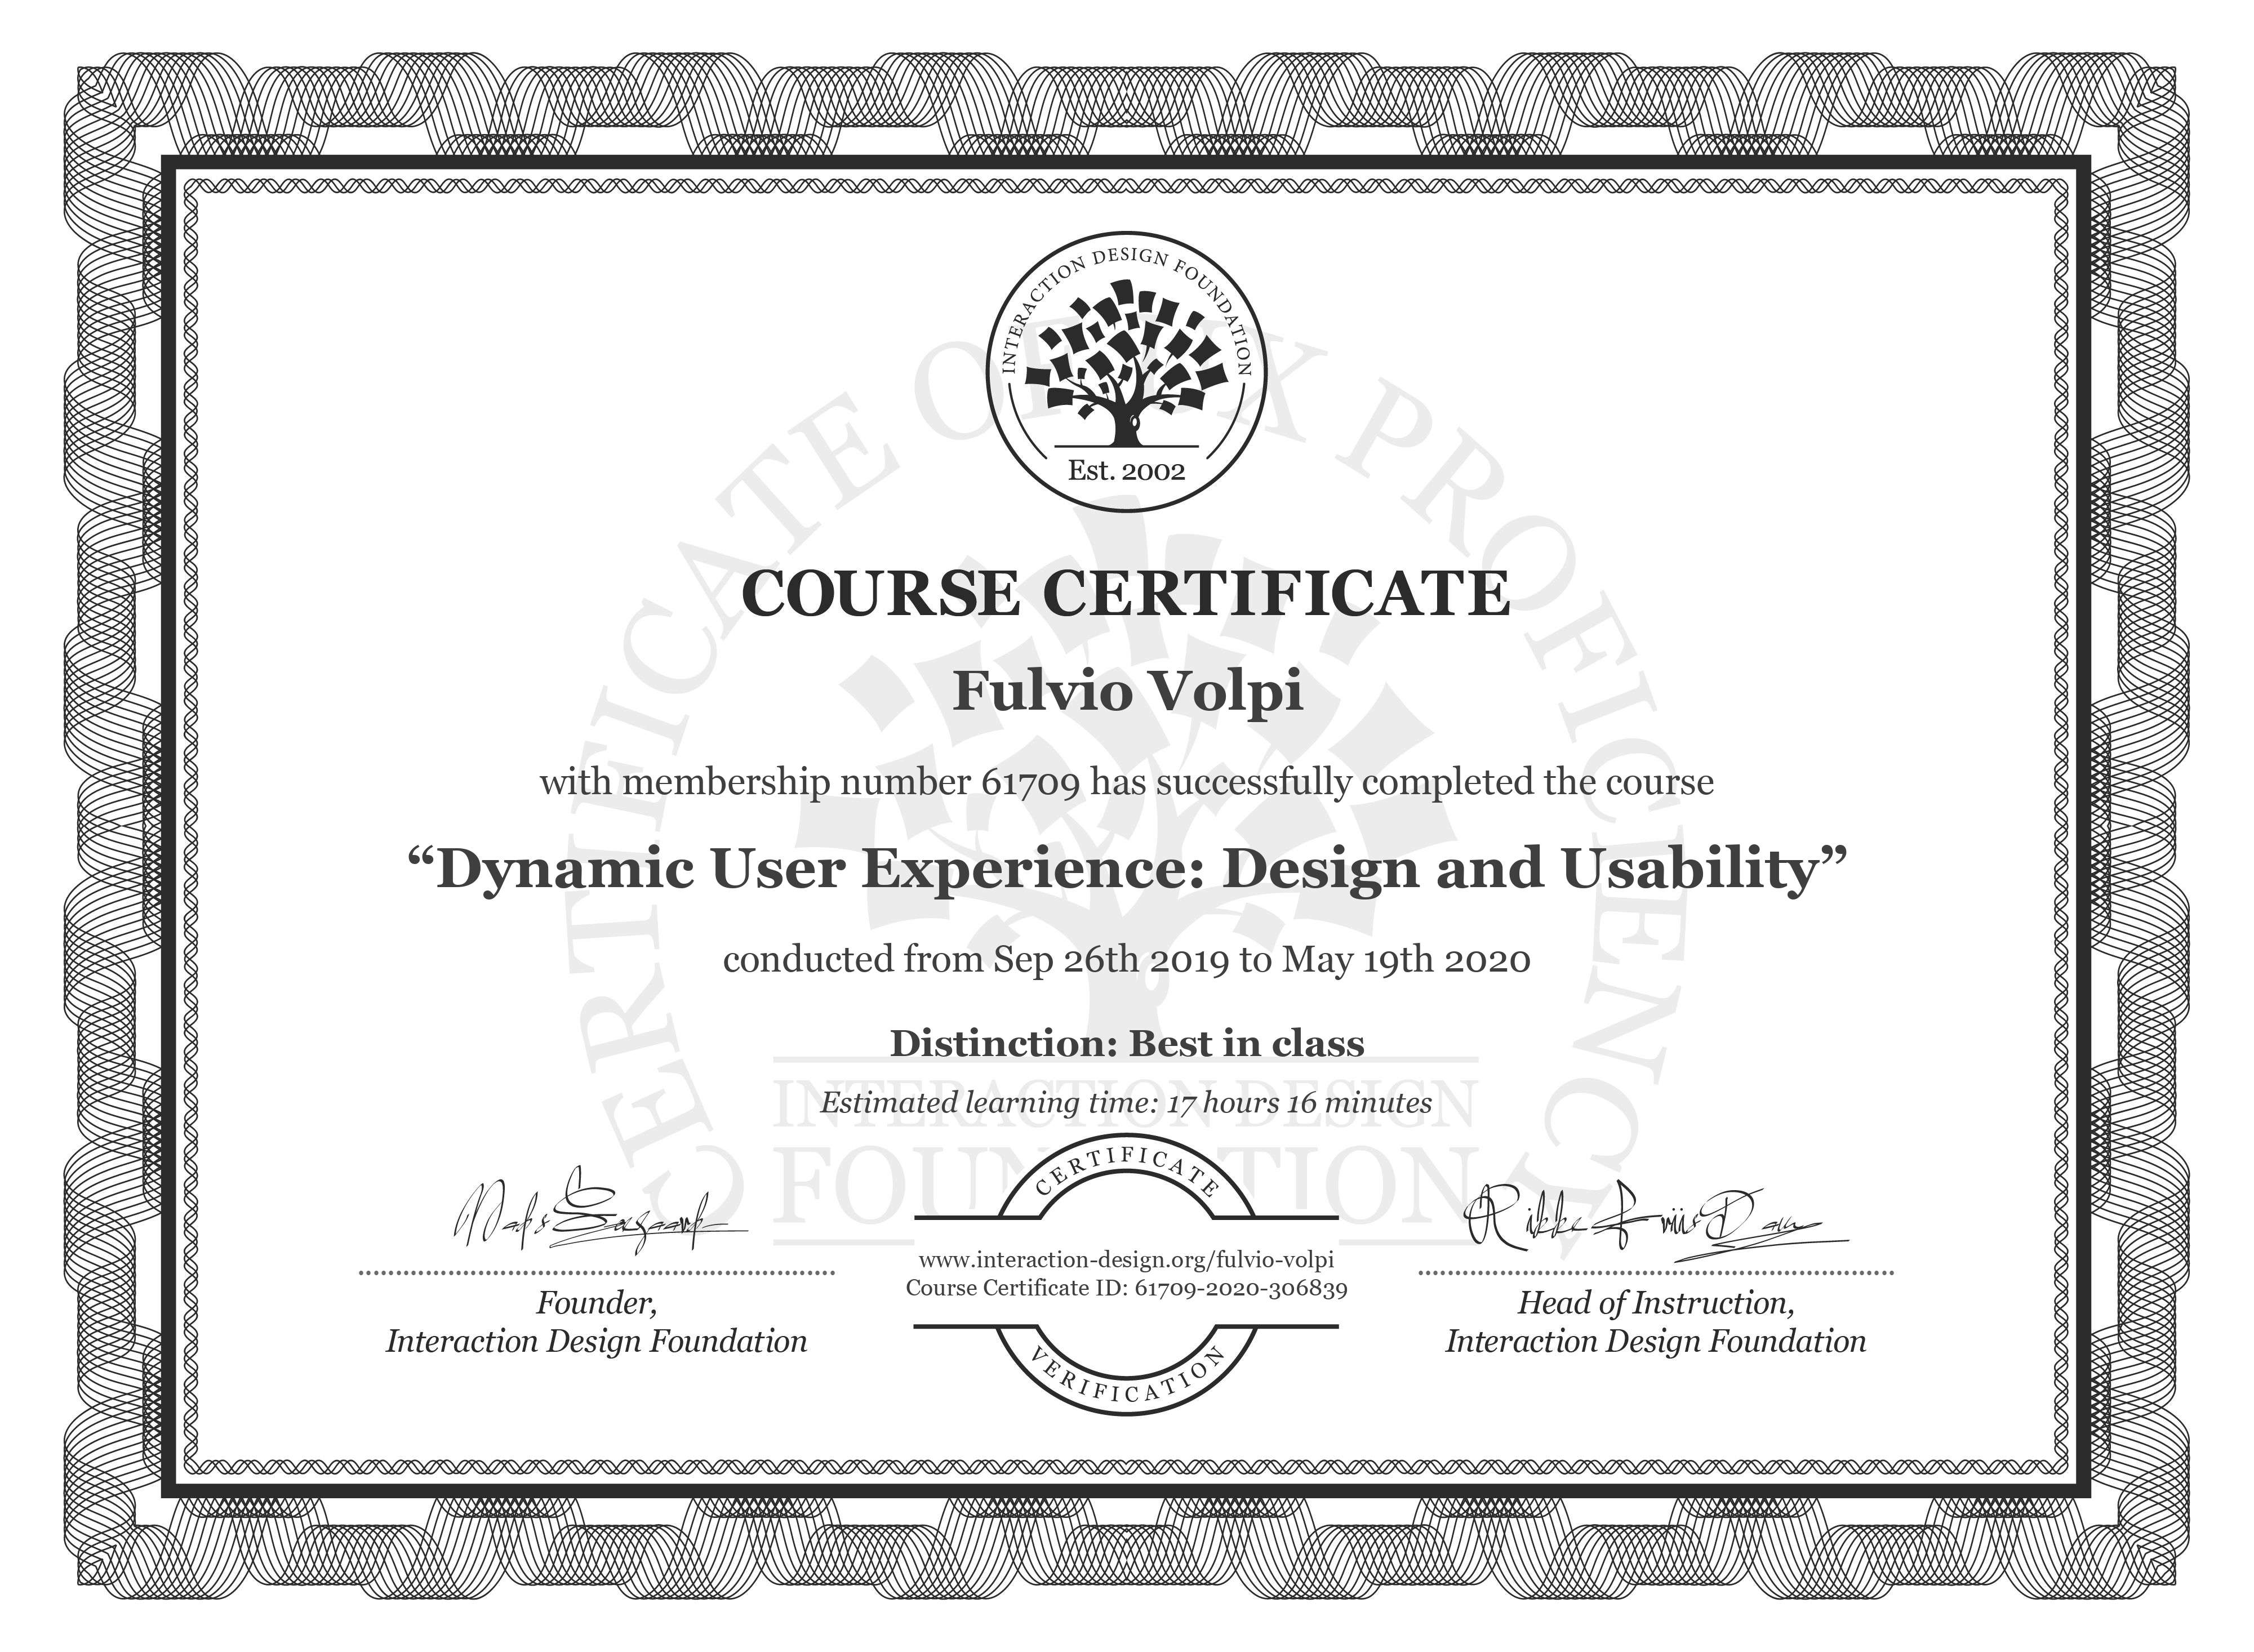 Fulvio Volpi's Course Certificate: Dynamic User Experience: Design and Usability